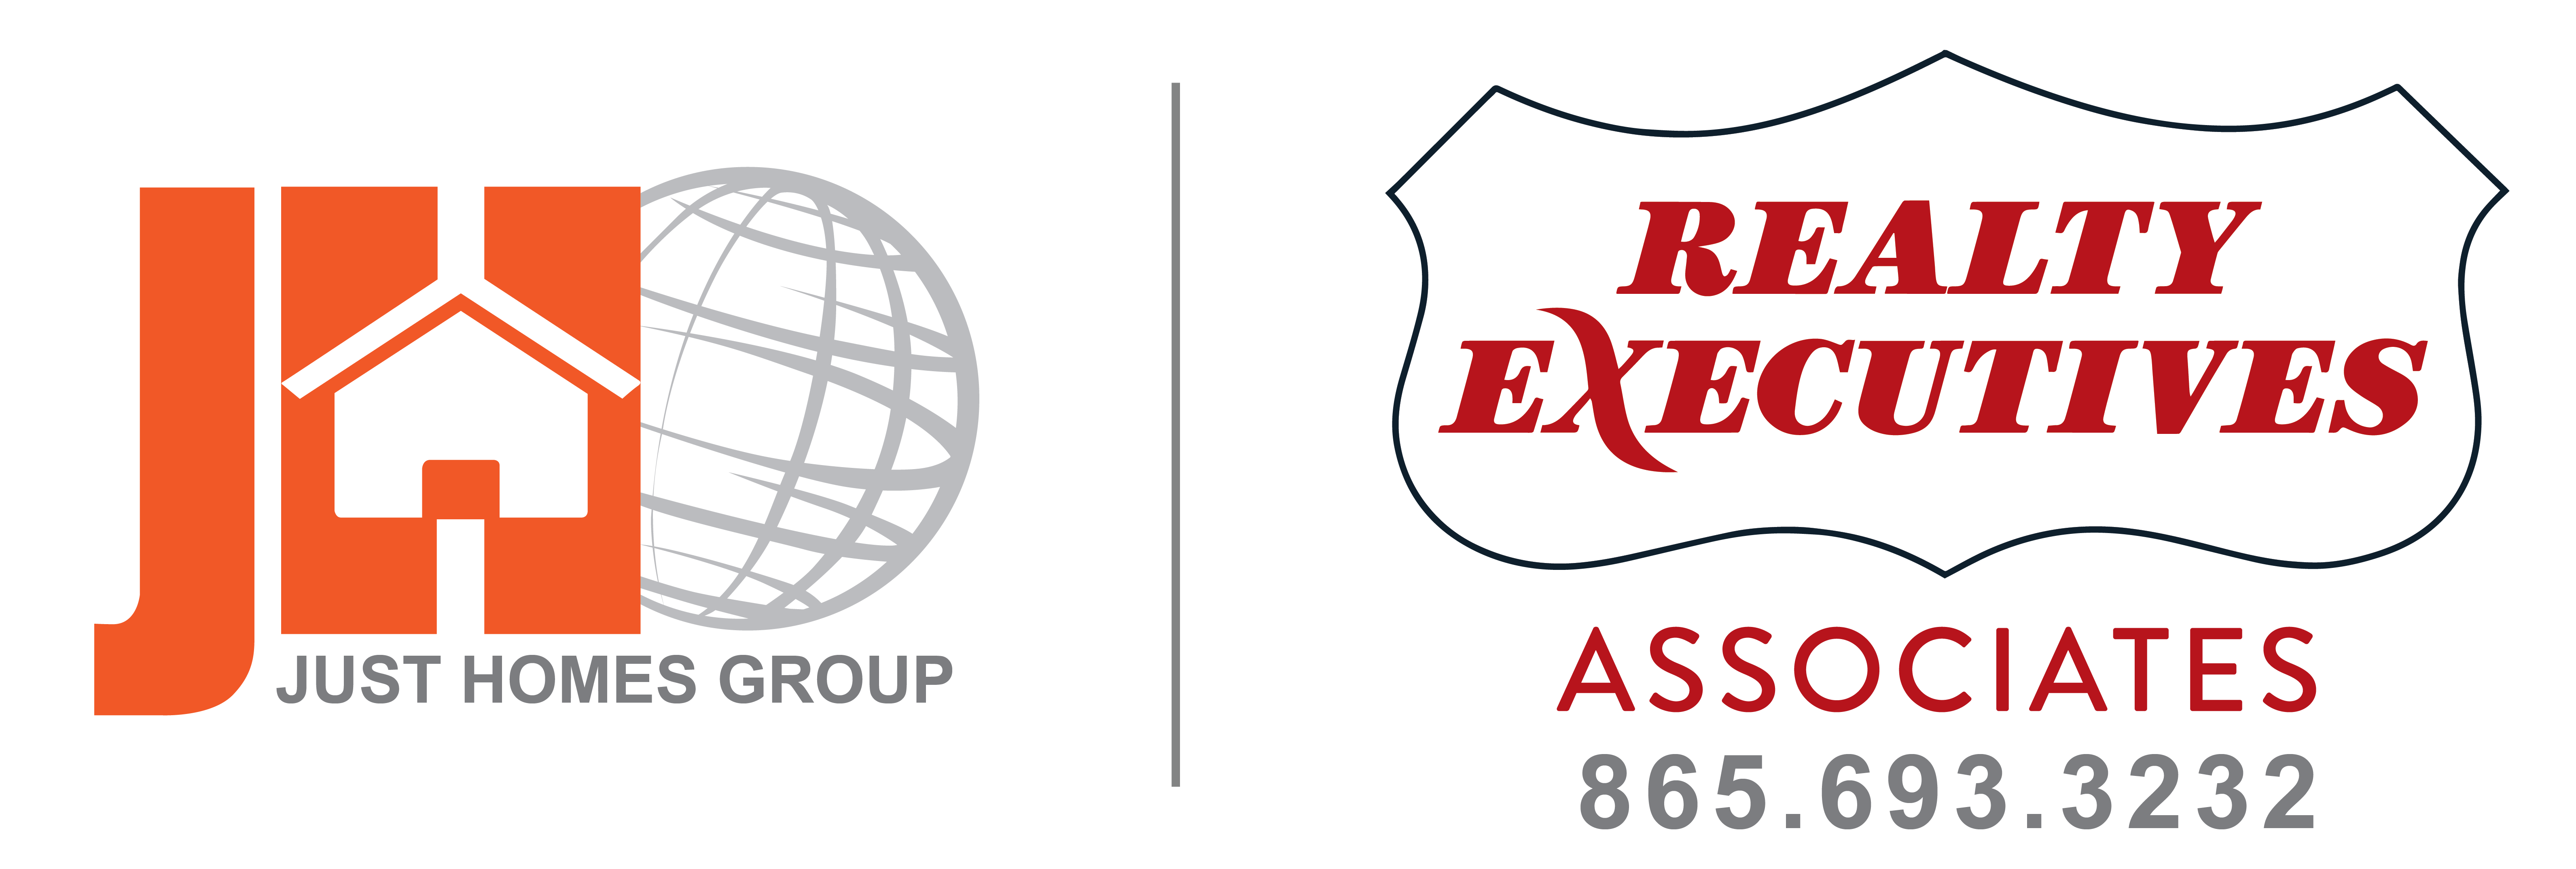 Just homes group rea logo 01